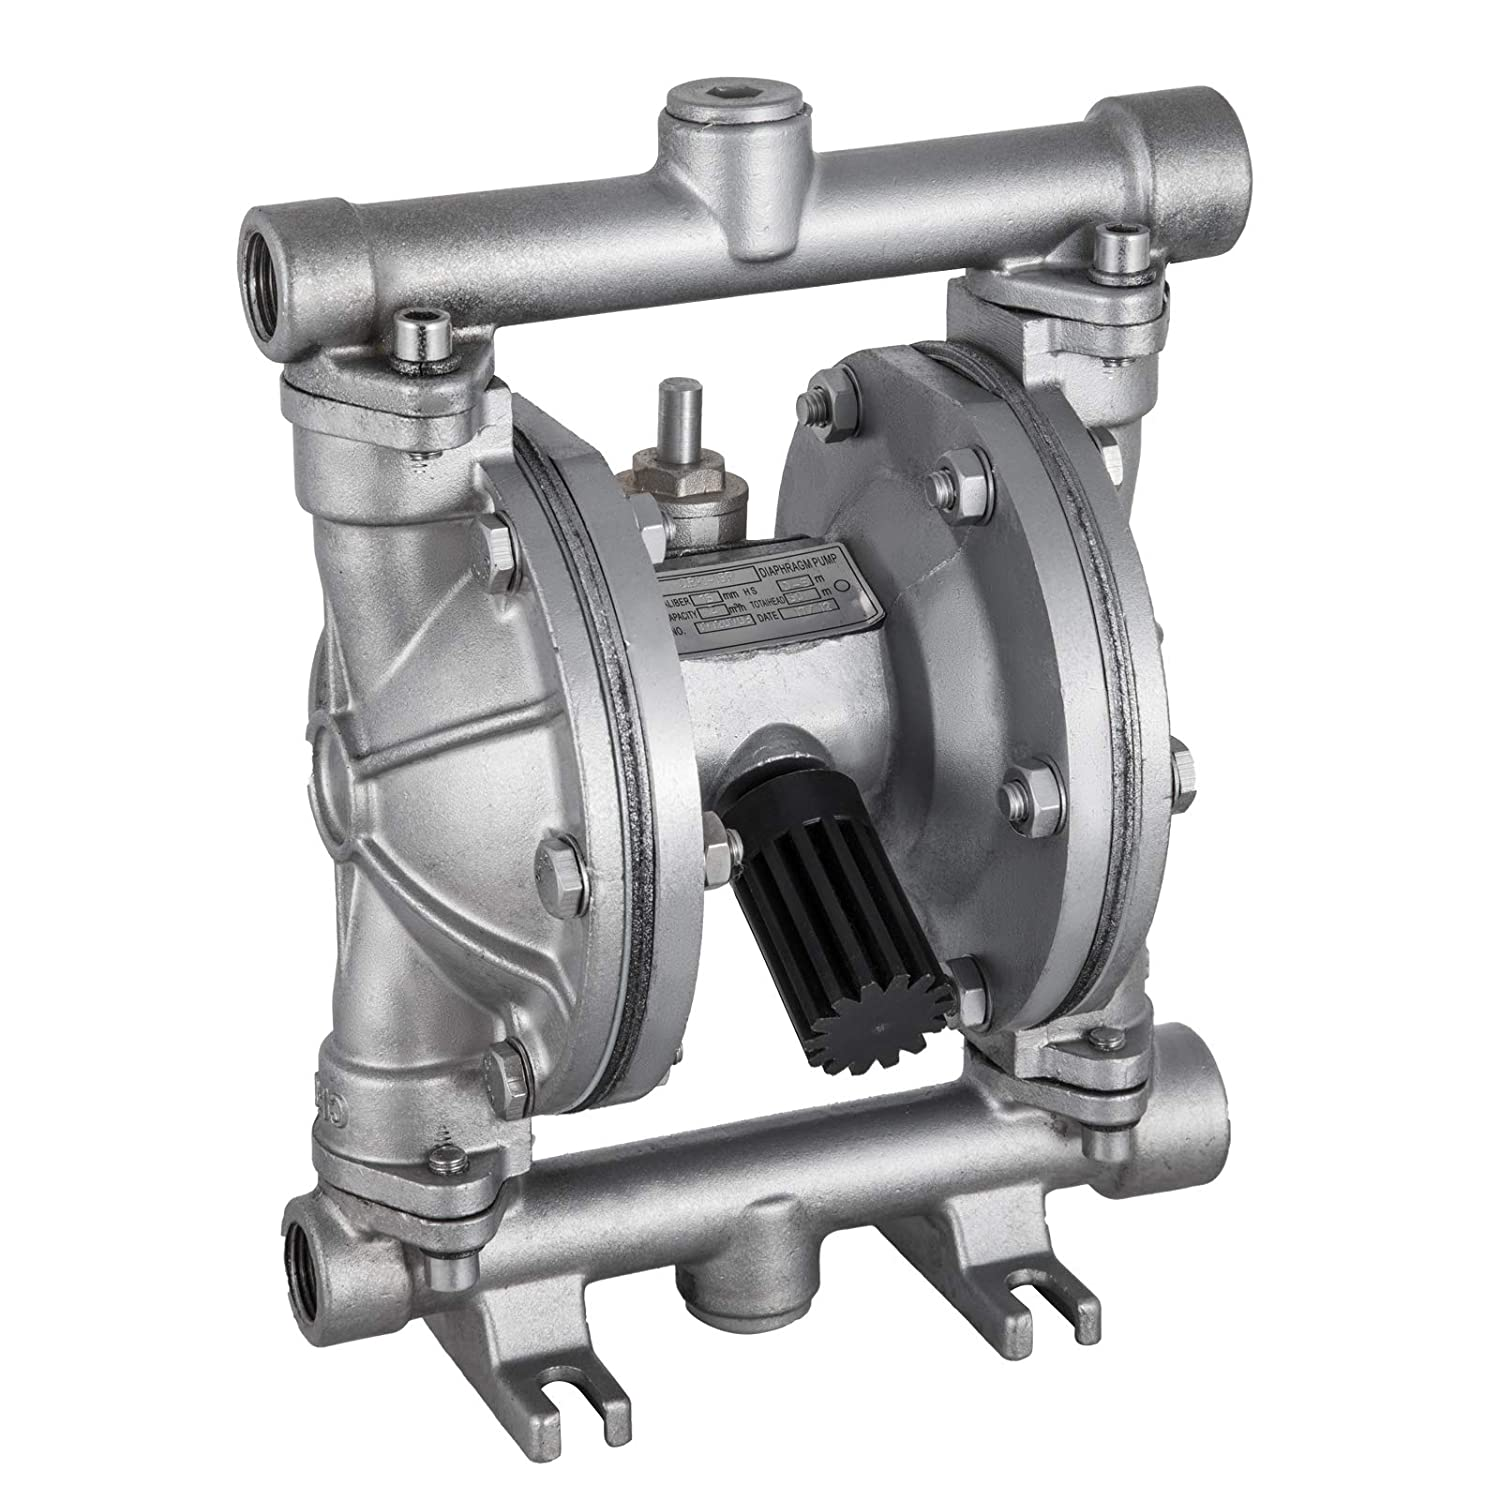 VEVOR Double Diaphragm 12 GPM Air Operated Double Diaphragm Pump 1/2Inch Plastic Air-Operated Diaphragm Pump 120 PSI Double Diaphragm Air Pump (QBK-15P)